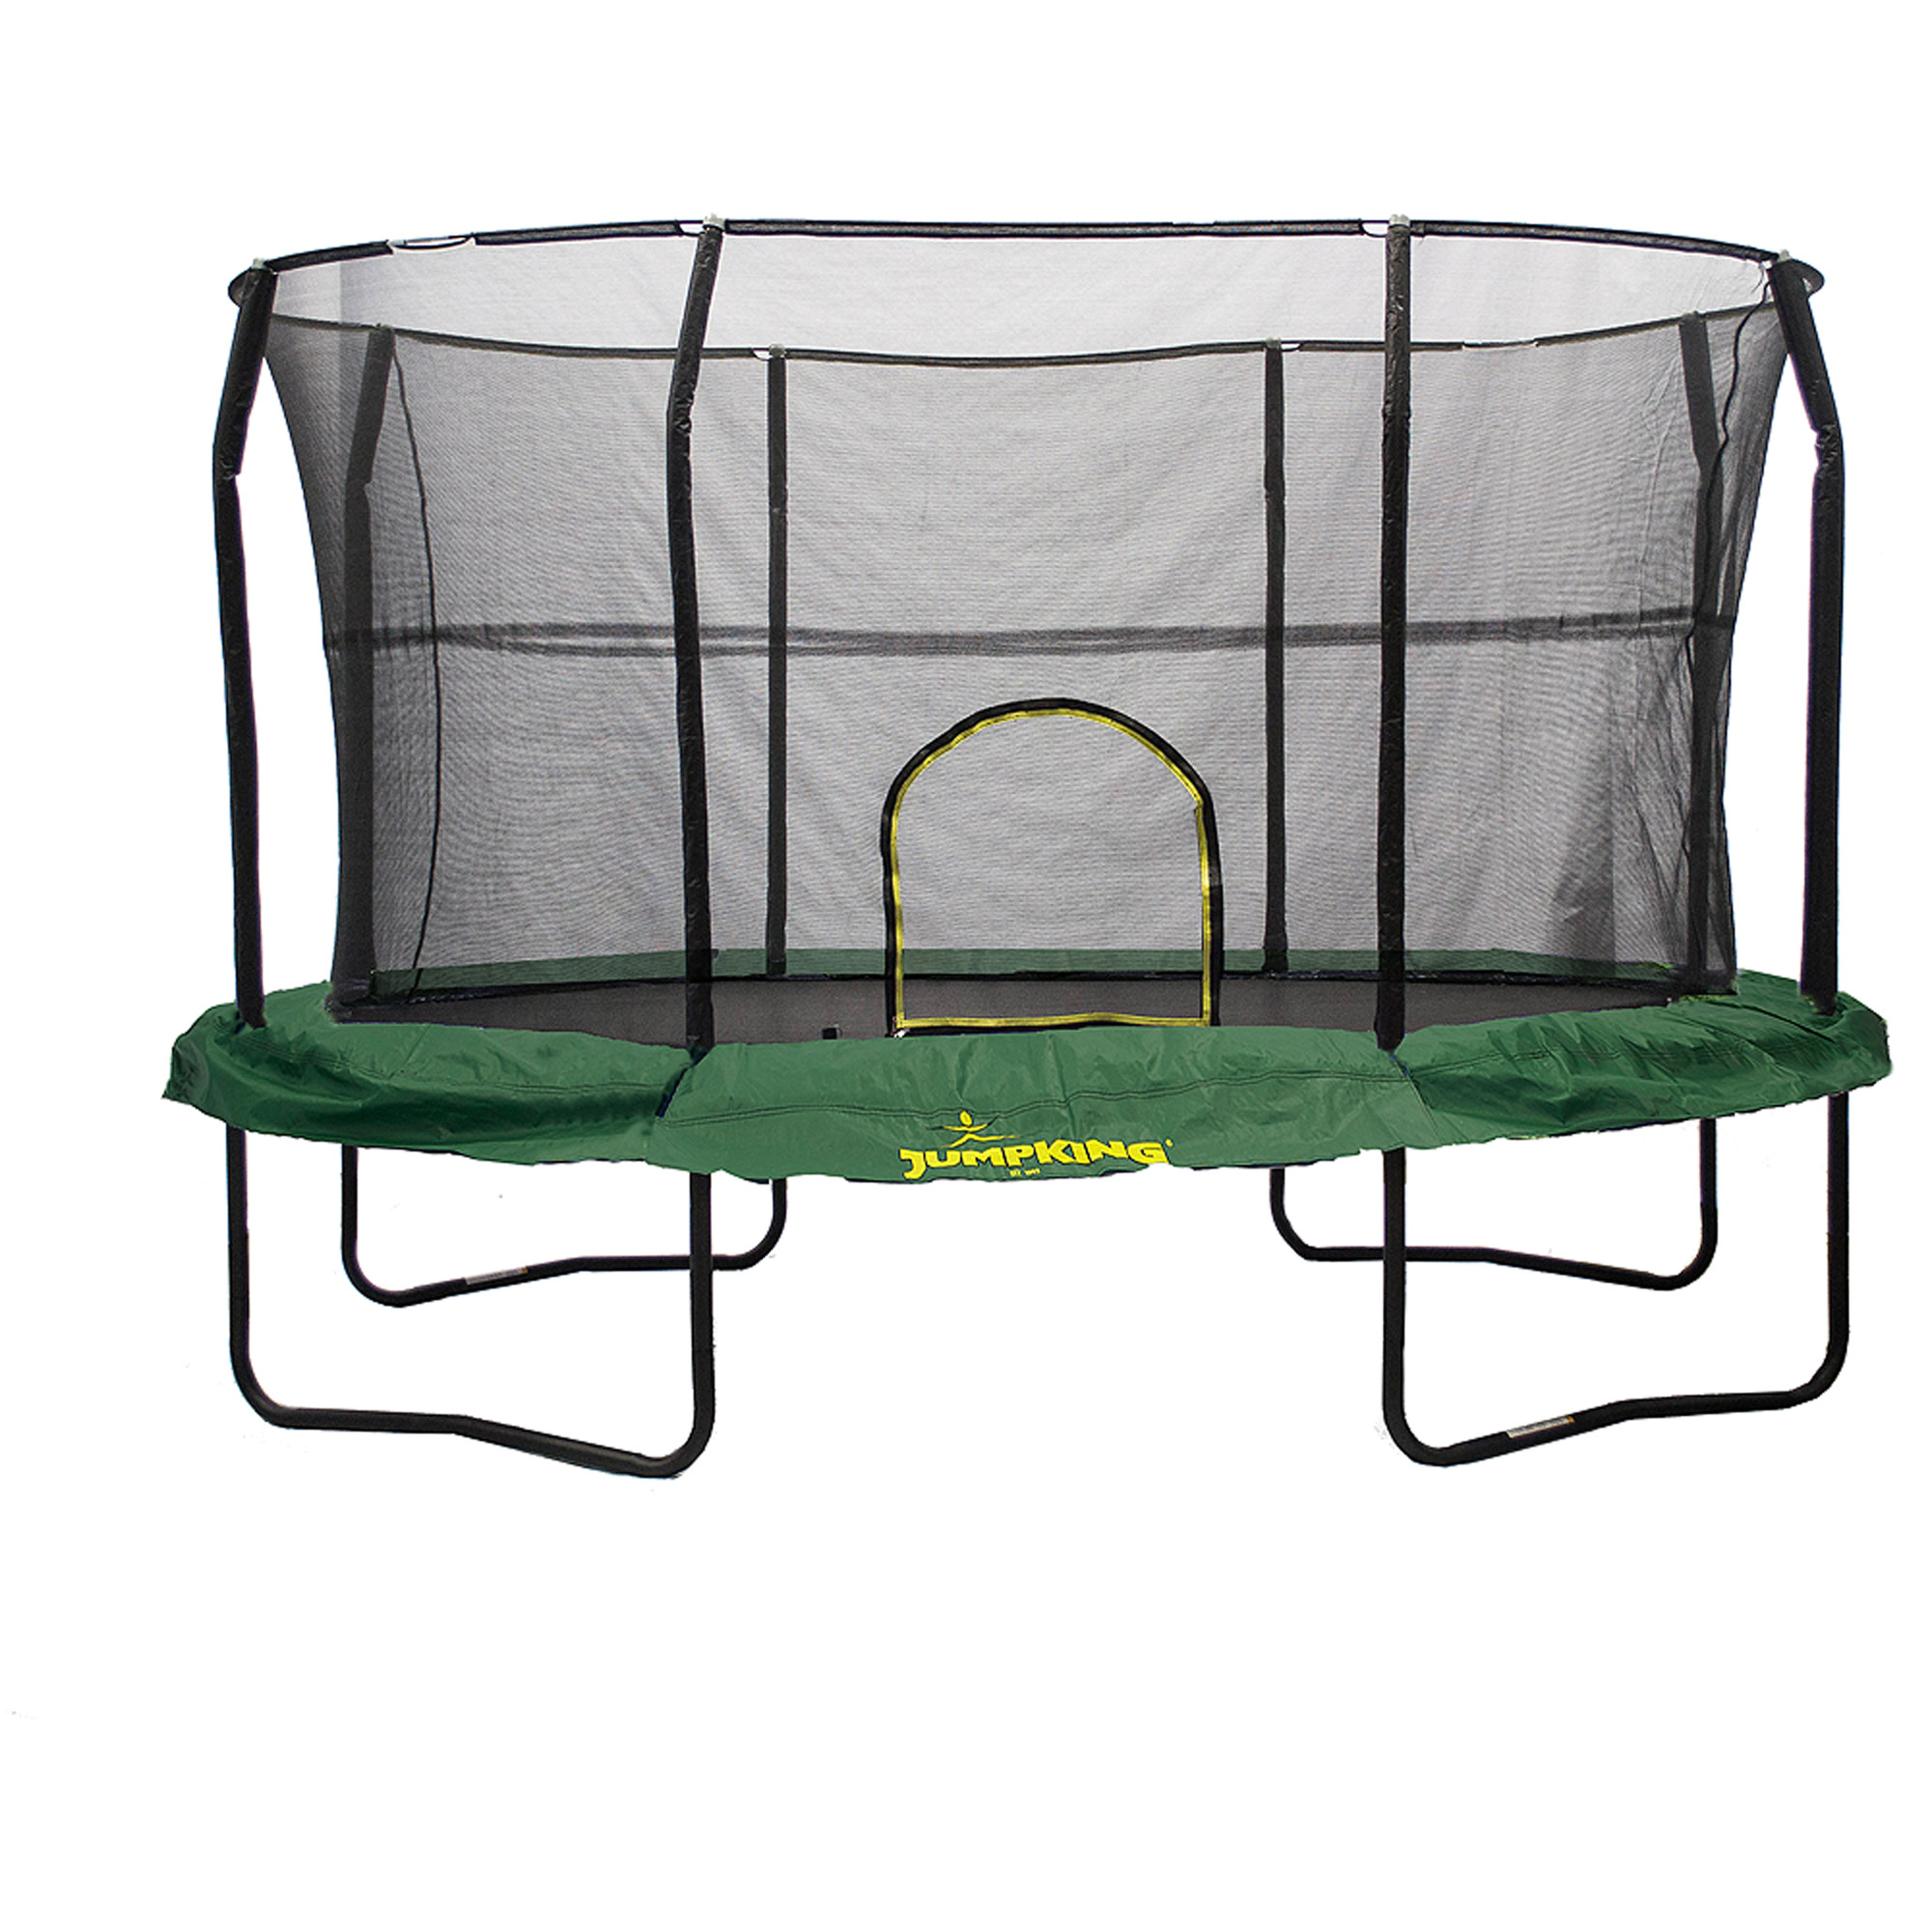 Jumpking Oval 8 x 12 Foot Trampoline, with Safety Enclosure, Green (Box 1 of 2)